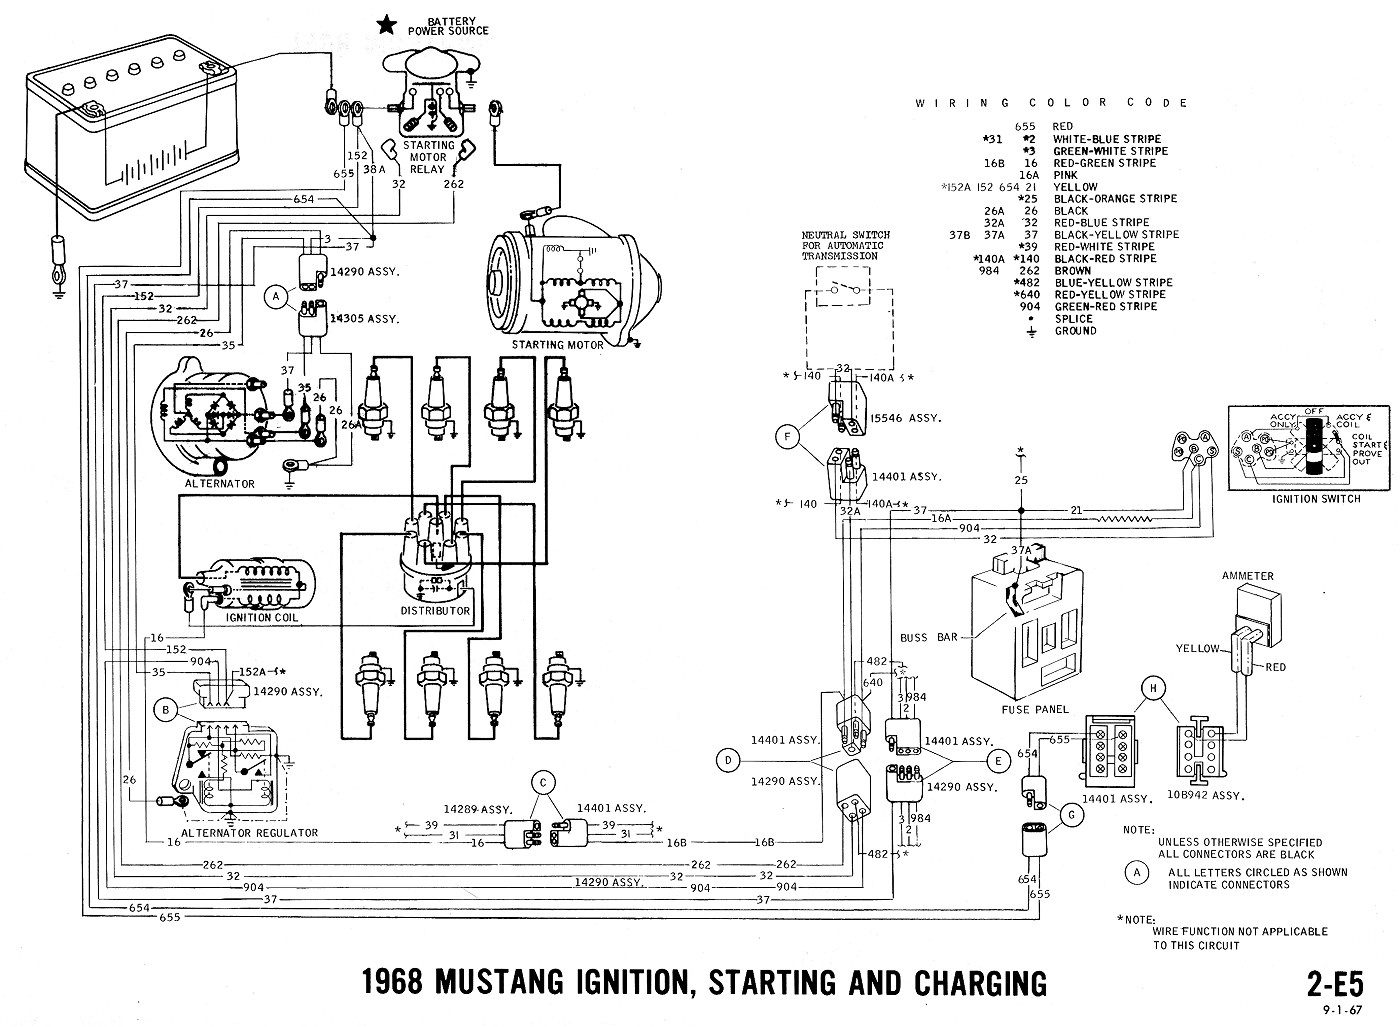 1968 Mustang Wiring Diagram Manual